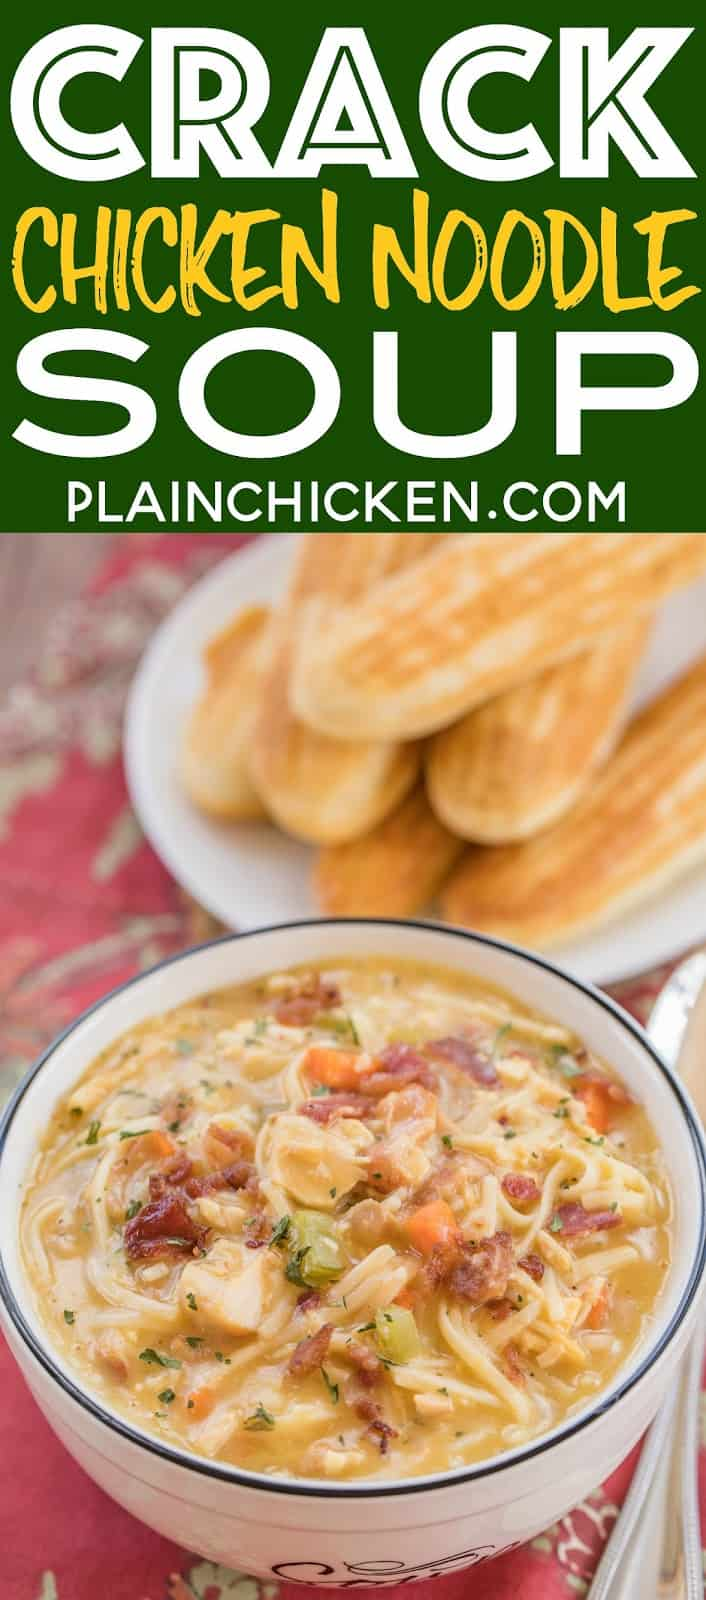 Crack Chicken Noodle Soup - this soup should come with a warning label! SO GOOD!!! Ready in 30 minutes! Chicken, cheese soup, milk, chicken broth, celery, carrots, ranch mix, bacon, cheddar cheese and egg noodles. Everyone went back for seconds - even our super picky eaters! A great kid-friendly dinner!! We love this soup! #soup #bacon #chickennoodlesoup #crackchicken